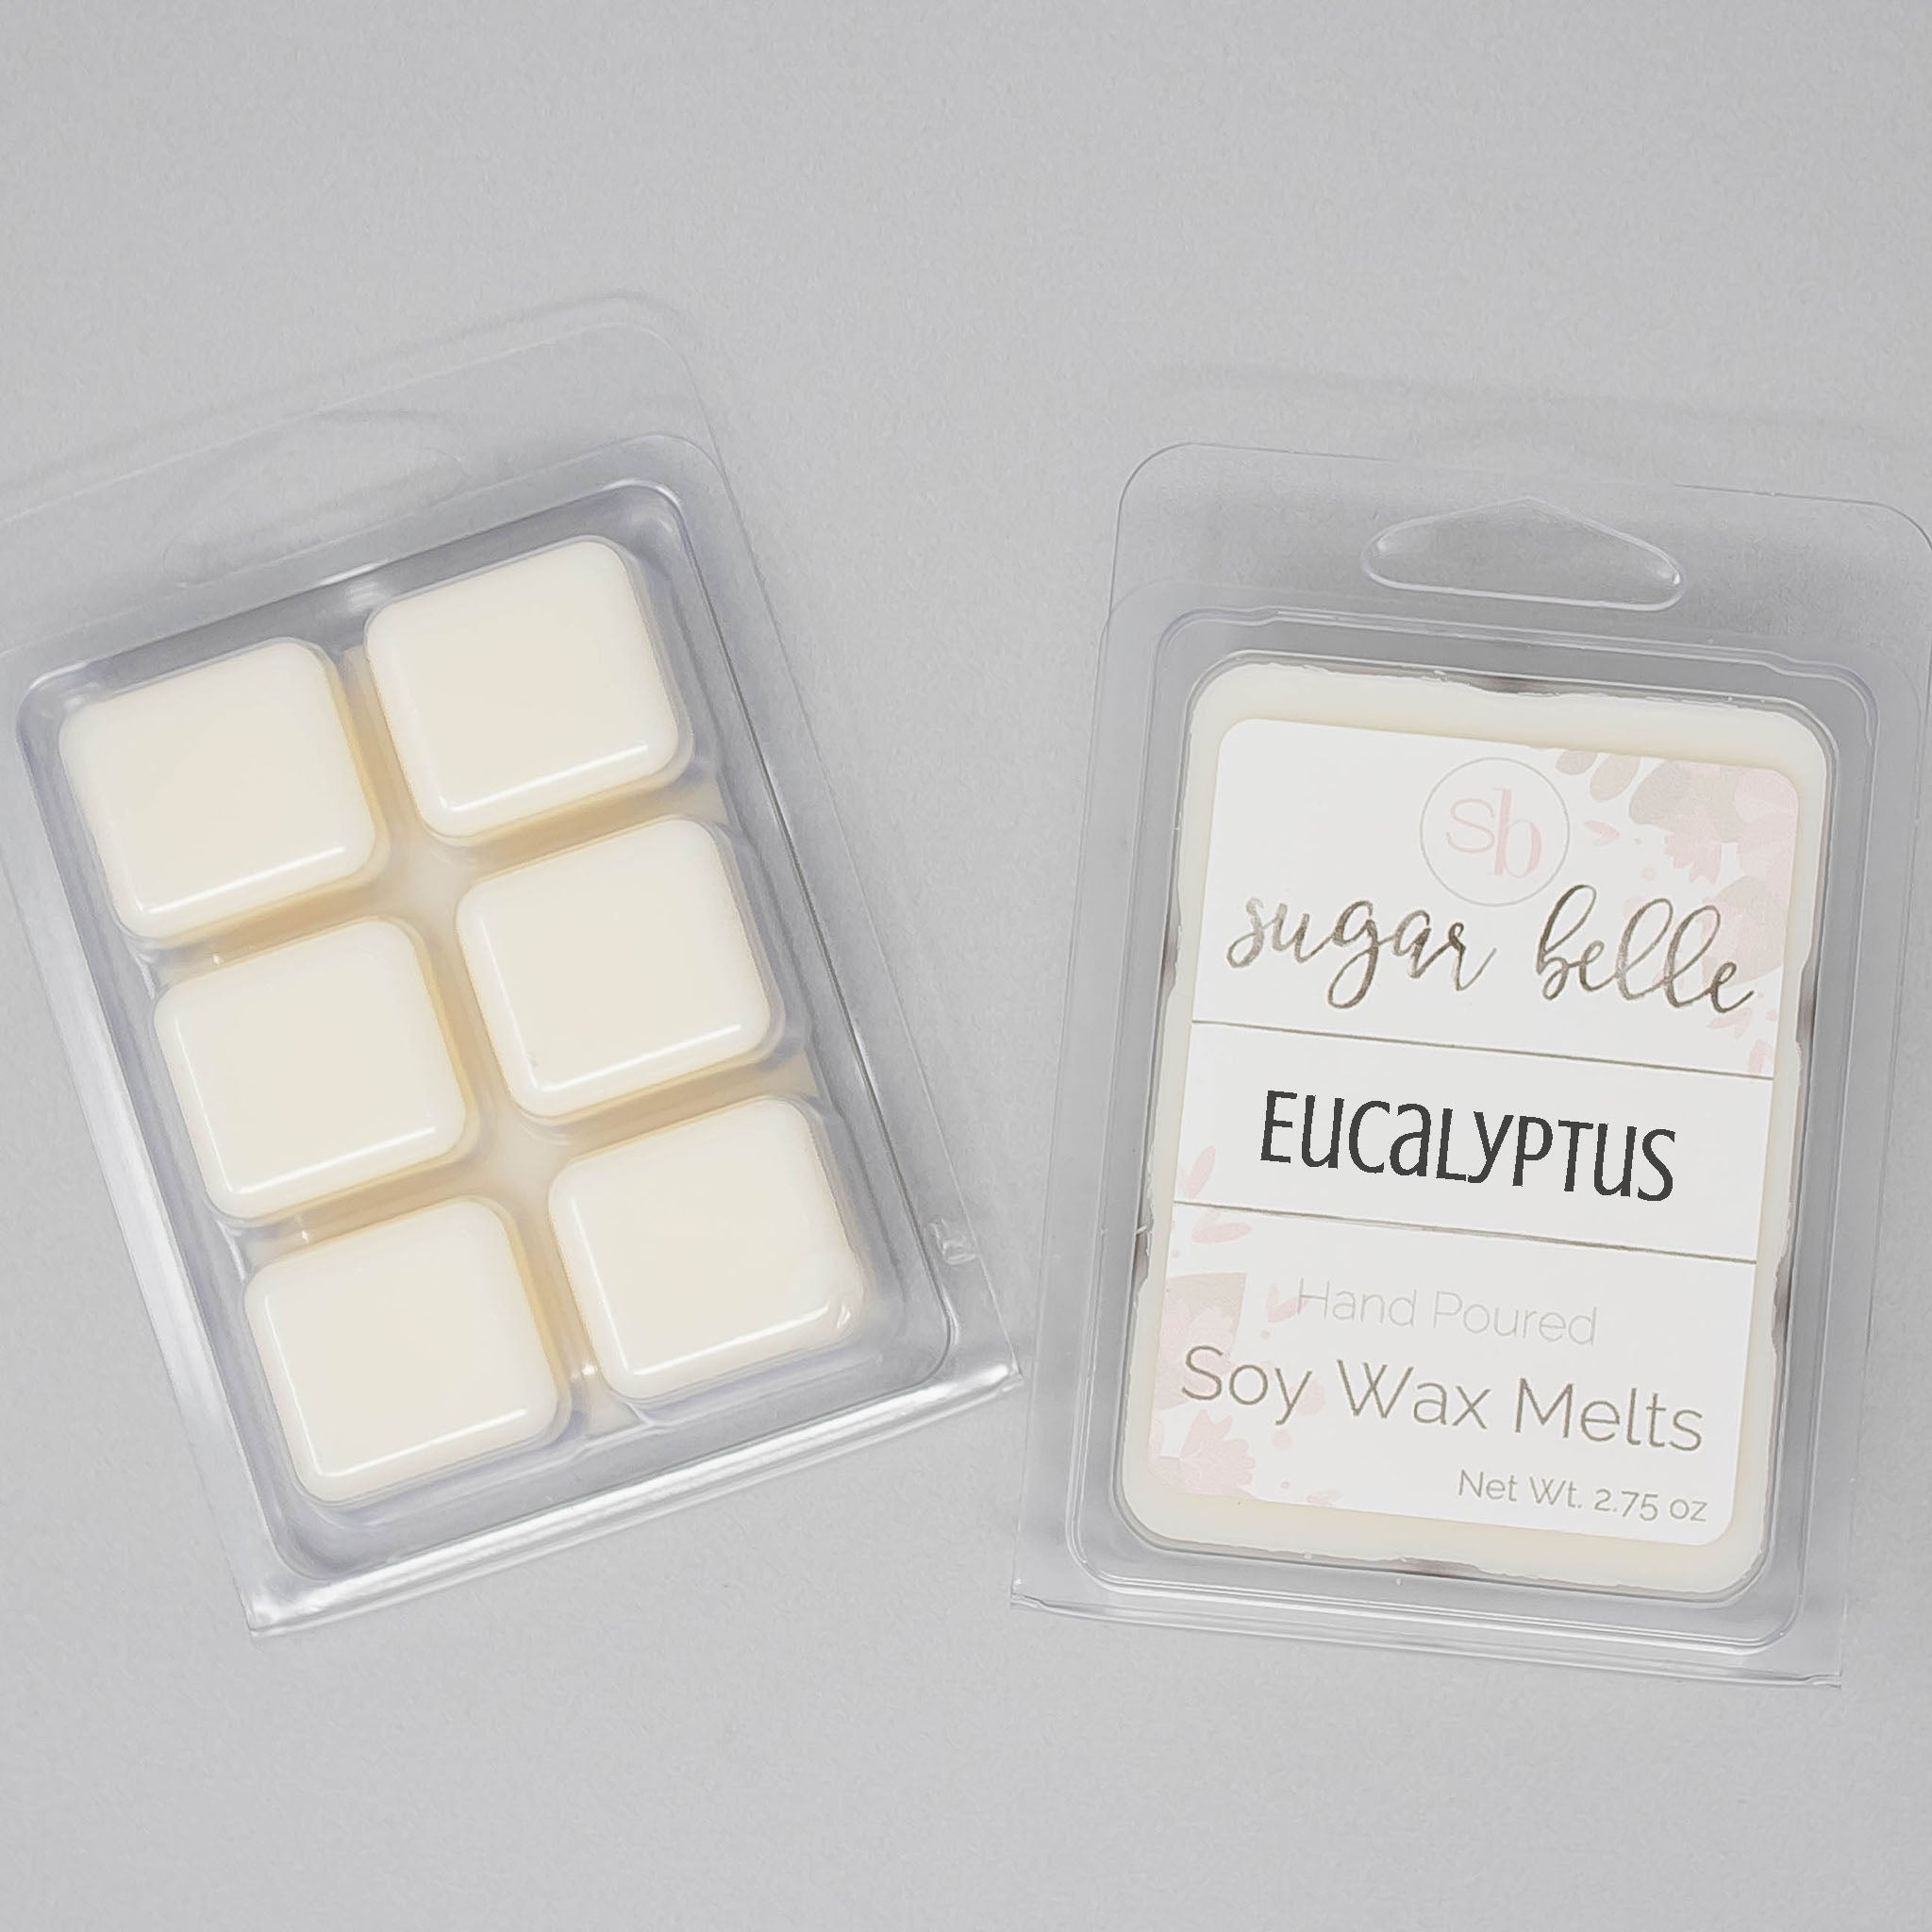 Spa Scented Candle Melts Scented Wax Cubes Eucalyptus Scented Soy Melts Gifts for Her Scented Wax Melts Eucalyptus Wax Melt